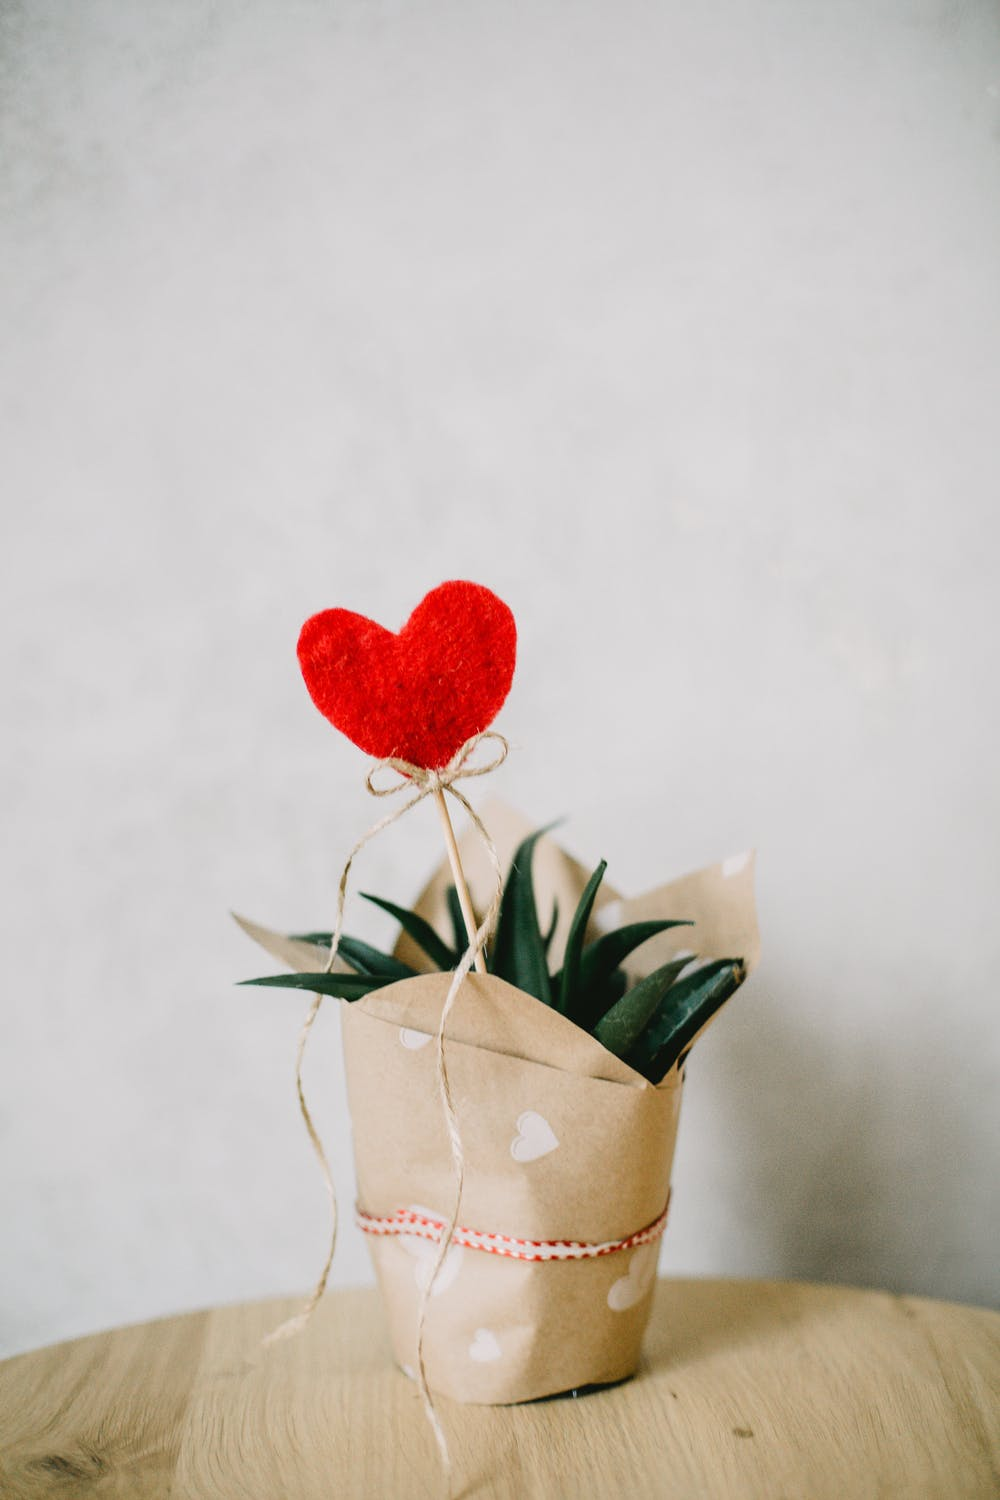 Easy ways to boost the heart you love